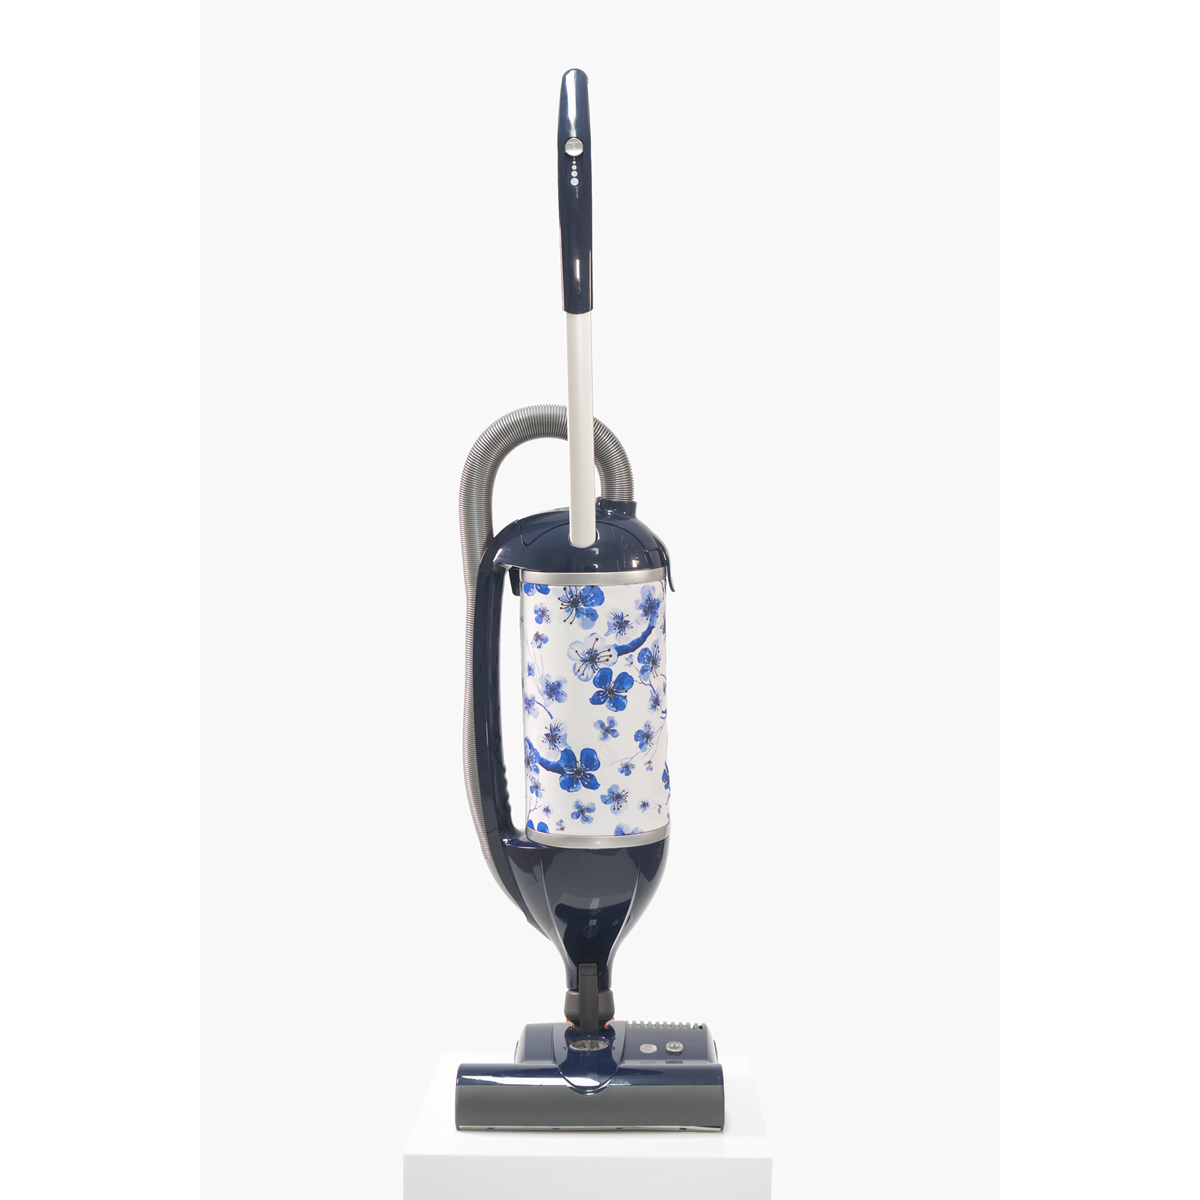 Image of 700Watts Upright Vacuum Cleaner Bagged Felix Oriental